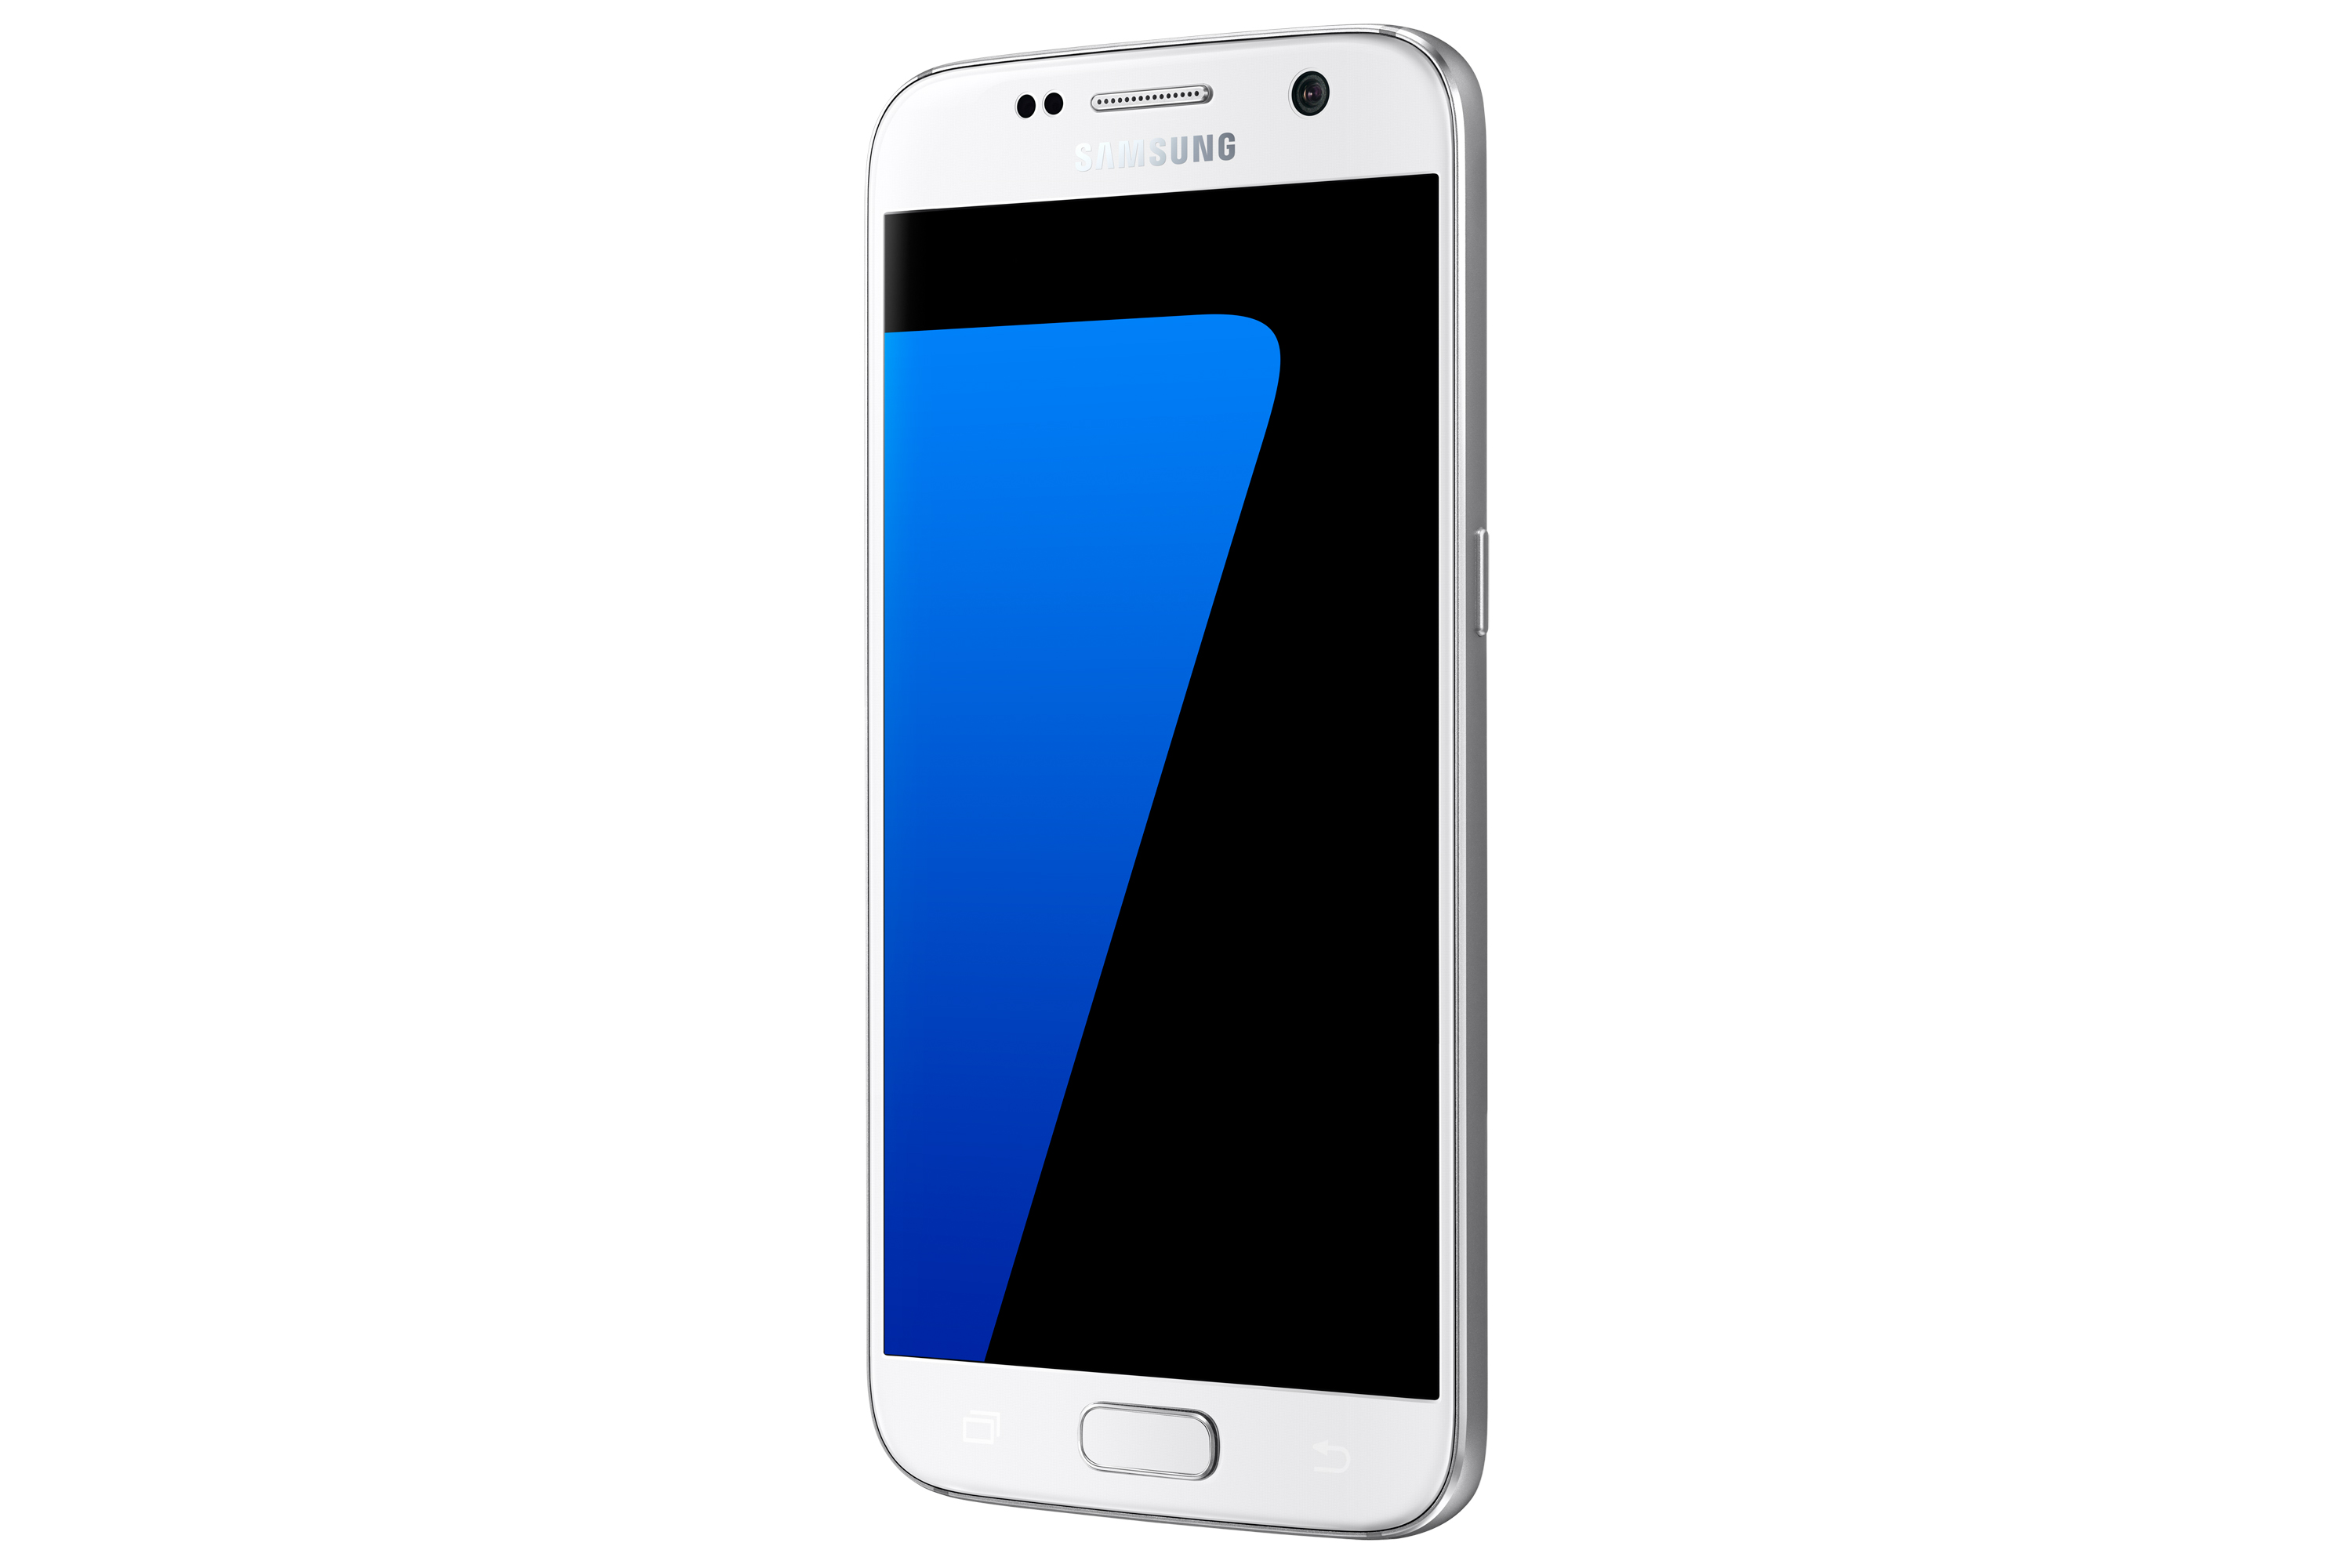 Galaxy-S7-and-S7-edge-official-press-shots (11)